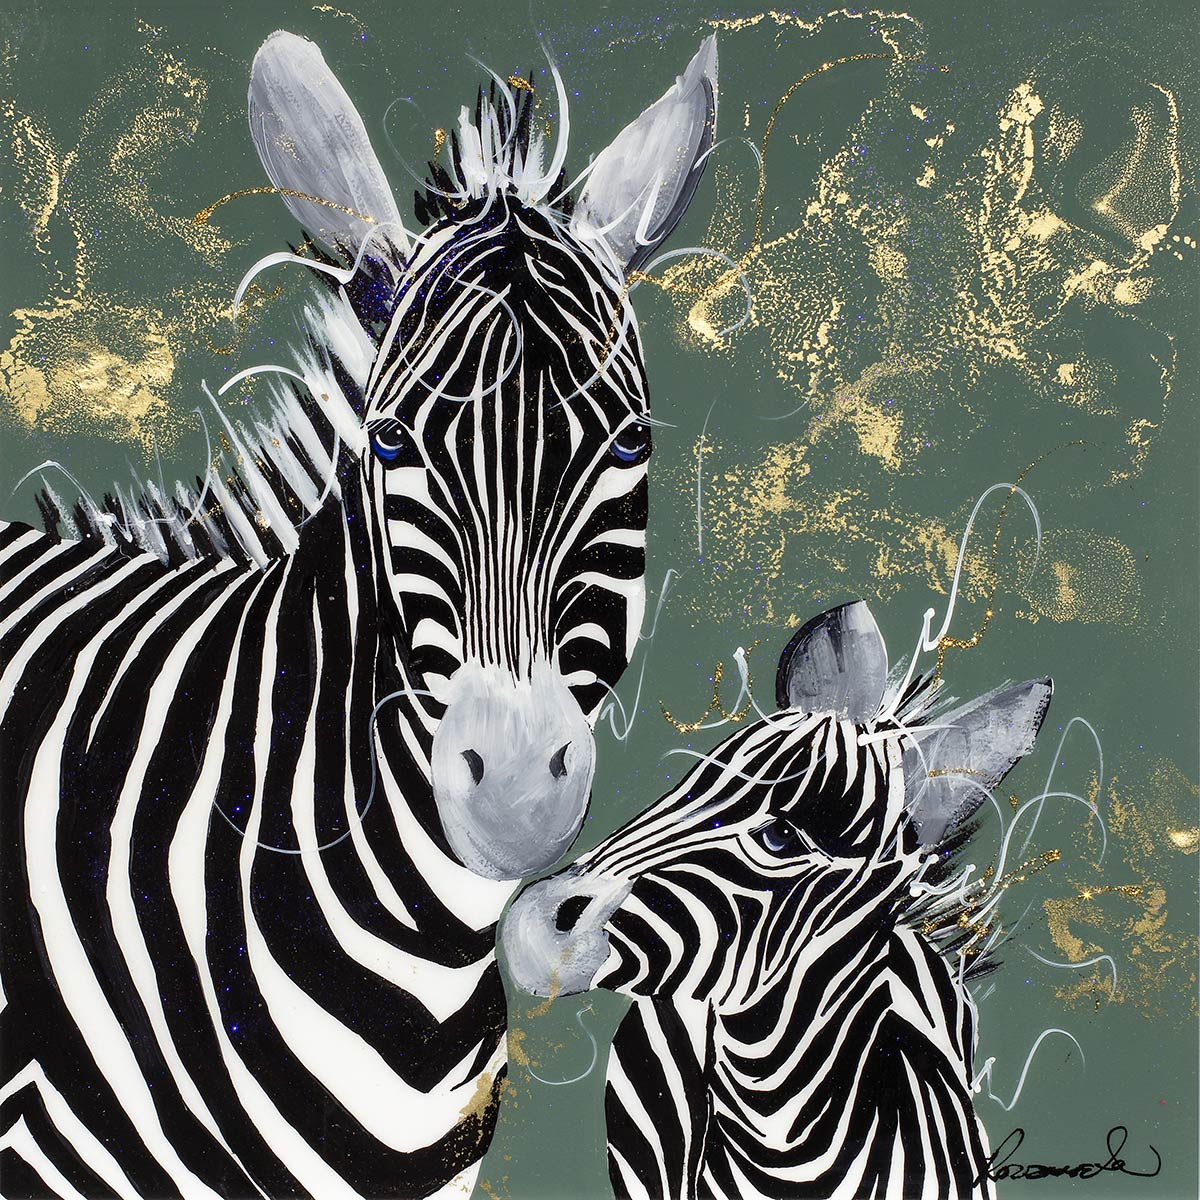 Striped Alike - Original